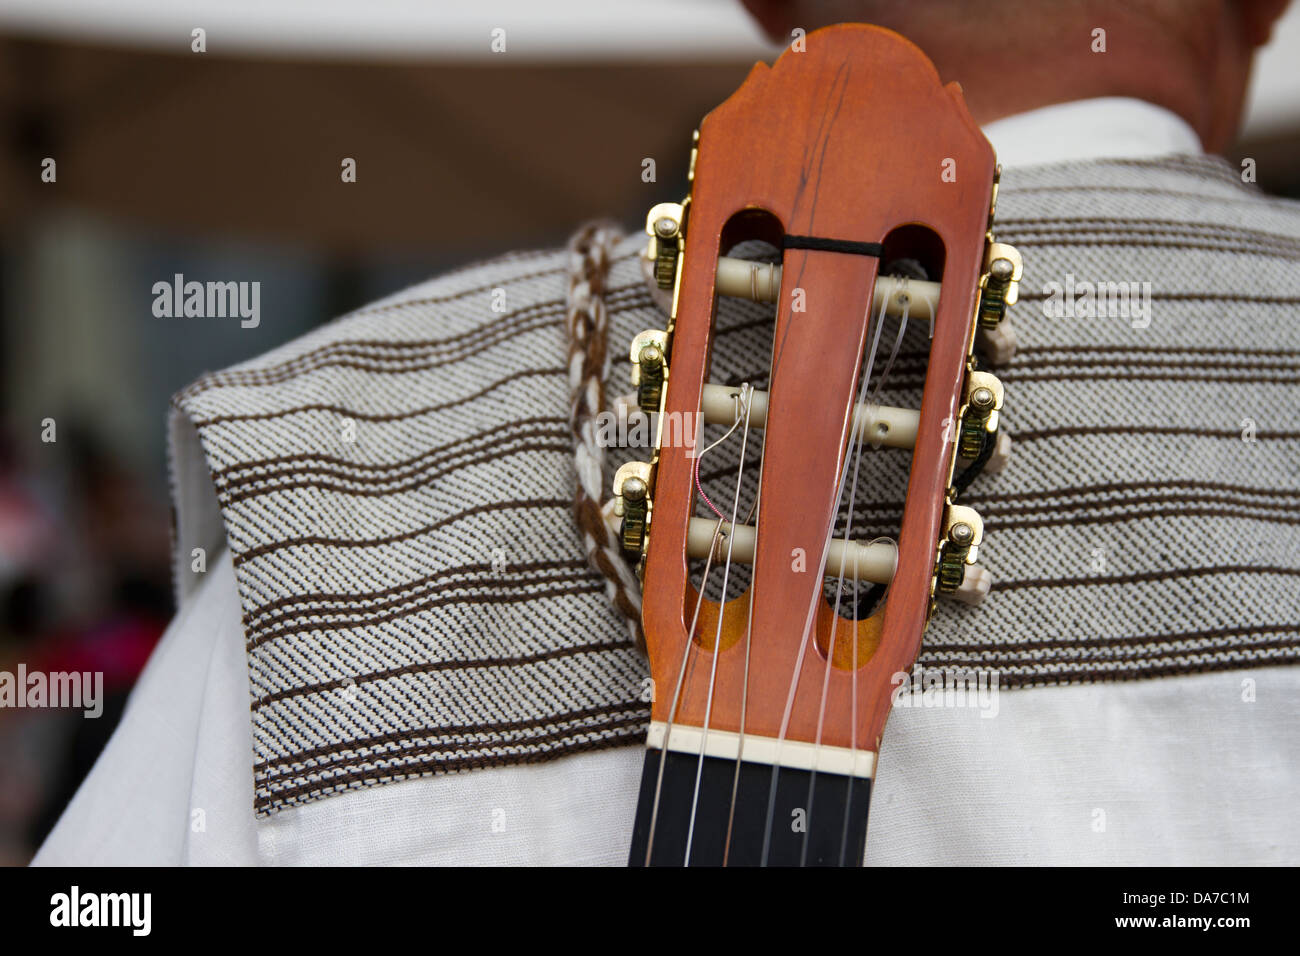 Folk Musicians with guitars on back - Stock Image